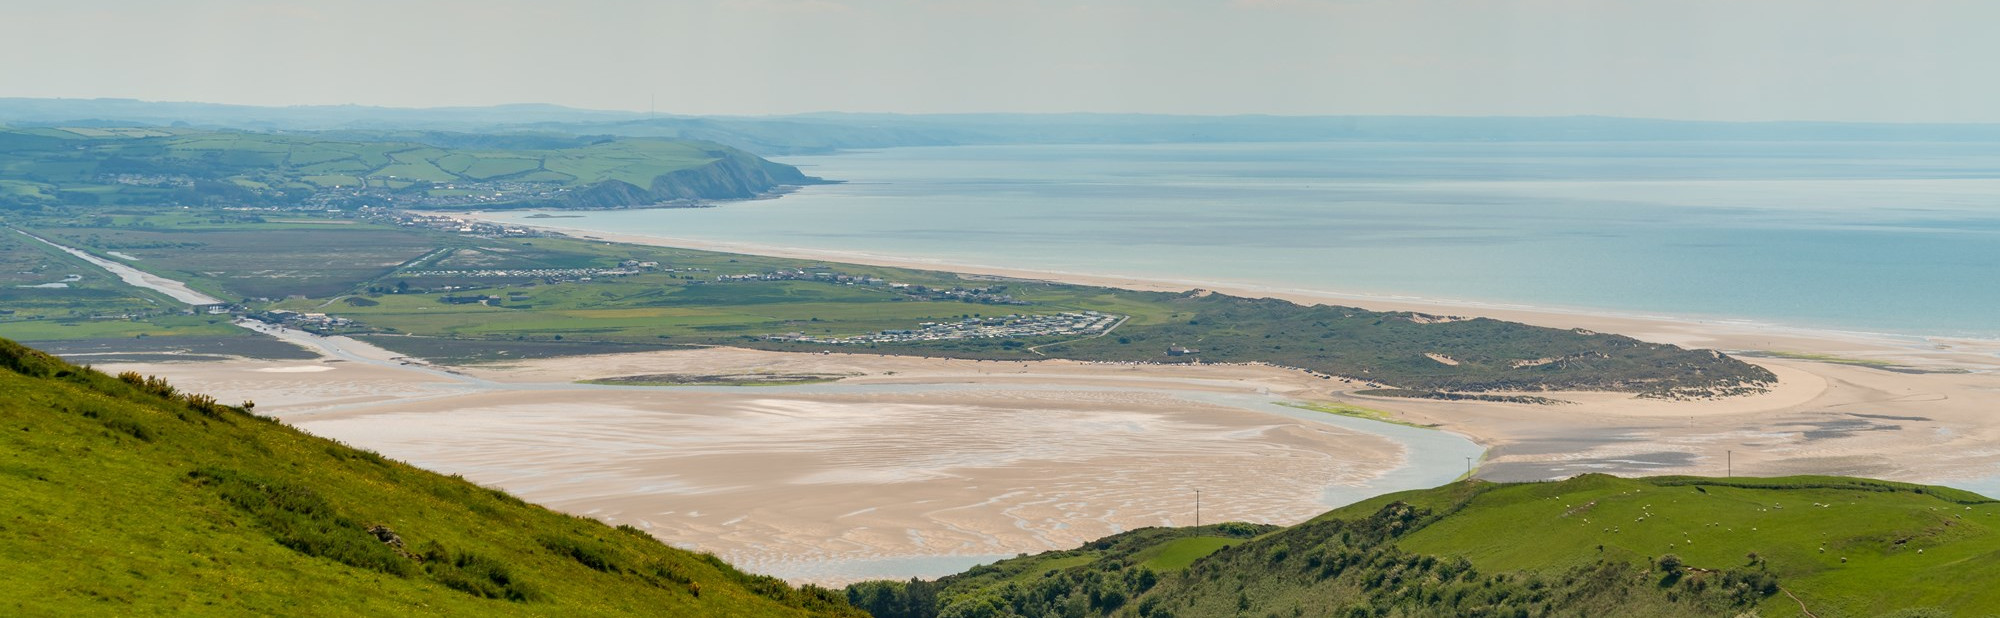 Looking towards Aberdovey and the Afon Lefi